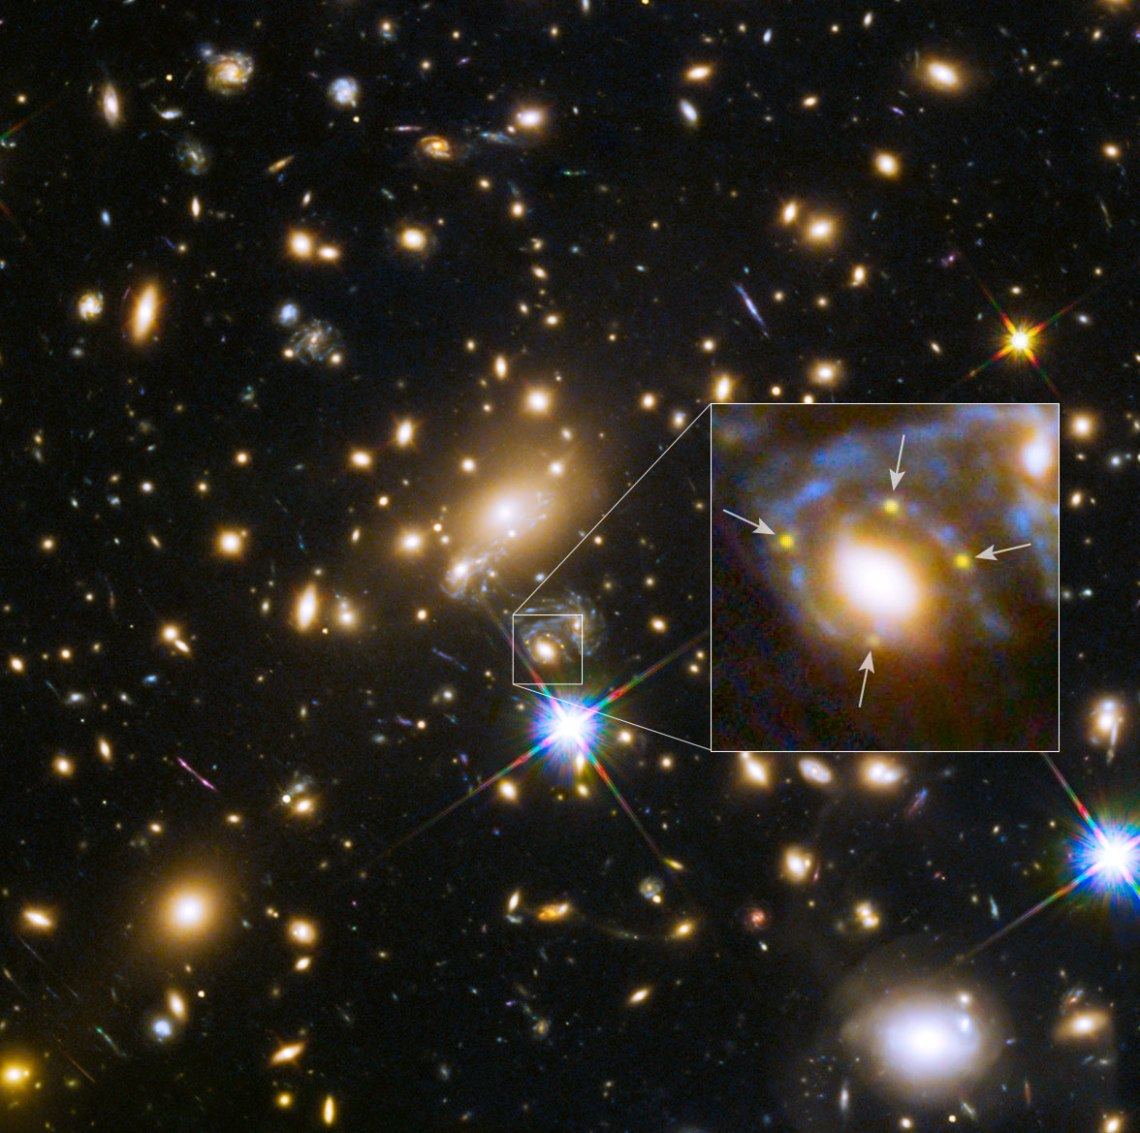 Astronomers using the Hubble Space Telescope have, for the first time, spotted four images of a distant exploding star. The images are arranged in a cross-shaped pattern by the powerful gravity of a foreground galaxy embedded in a massive cluster of galaxies. A close-up of the Einstein cross is shown in the inset.   Credit: NASA, ESA, S. Rodney (John Hopkins University, USA) and the FrontierSN team; T. Treu (University of California Los Angeles, USA), P. Kelly (University of California Berkeley, USA) and the GLASS team; J. Lotz (STScI) and the Frontier Fields team; M. Postman (STScI) and the CLASH team; and Z. Levay (STScI)